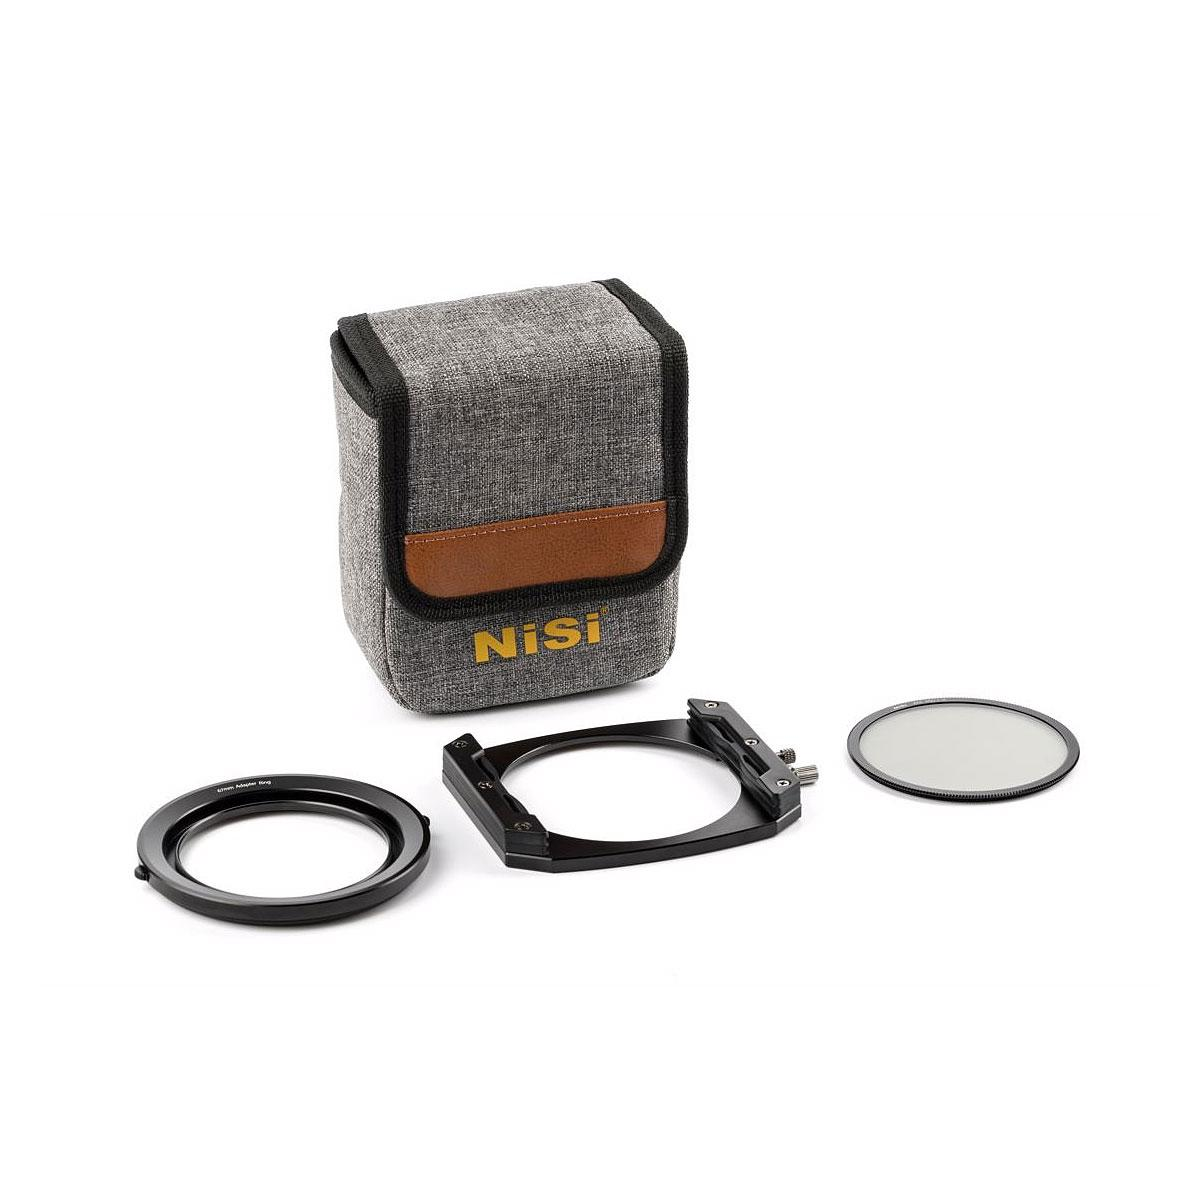 NiSi Filter Holder M75 Set